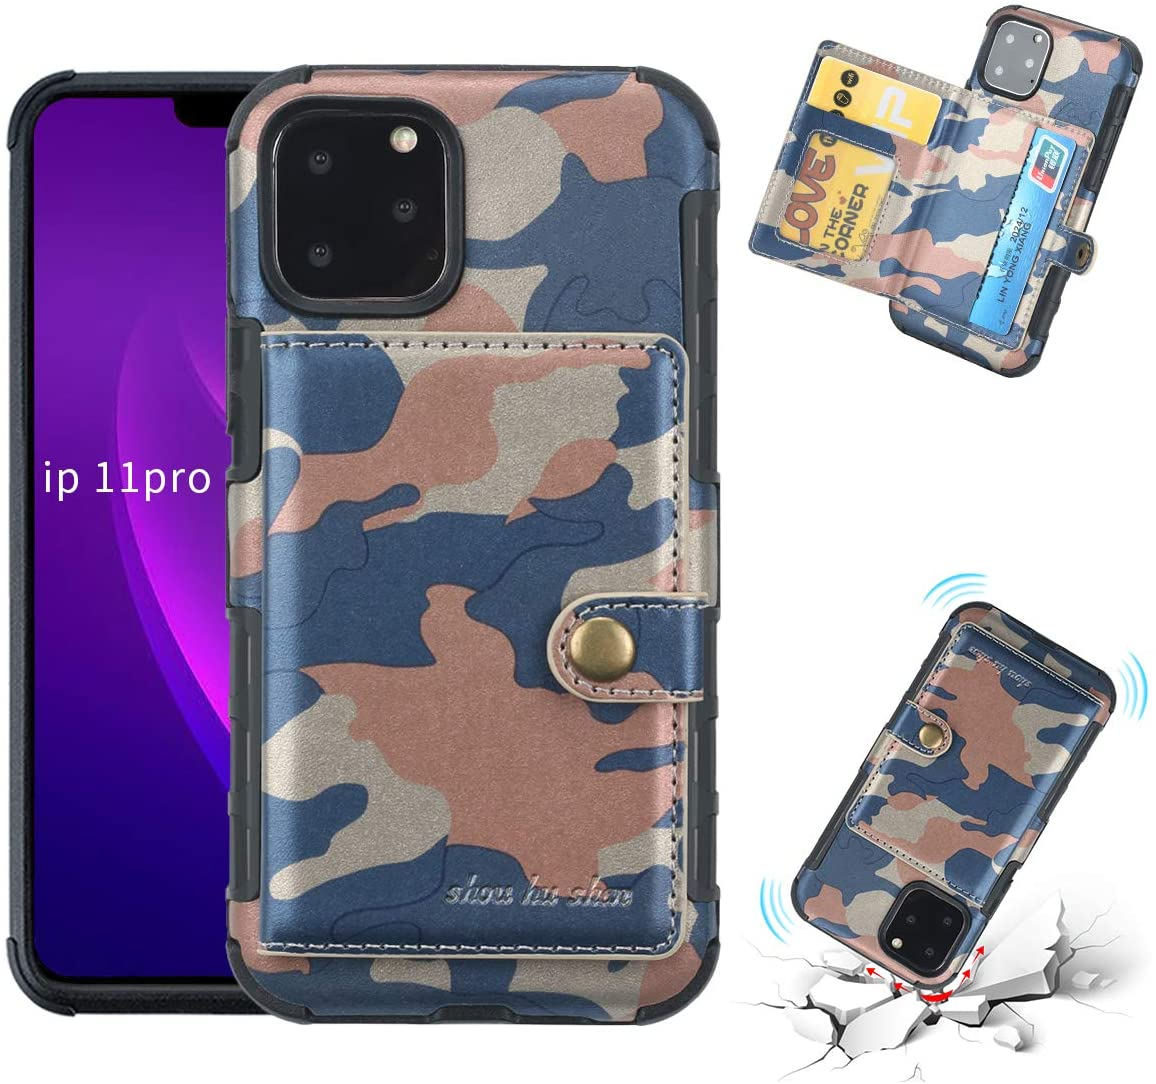 FDTCYDS iPhone 11 Pro Case with Card Holder,Shockproof Camouflage Armor Silicone Hybrid Rugged Protective Kickstand Wallet Cover Case for Apple iPhone 11 Pro (5.8 inch Edition) - Camo Blue